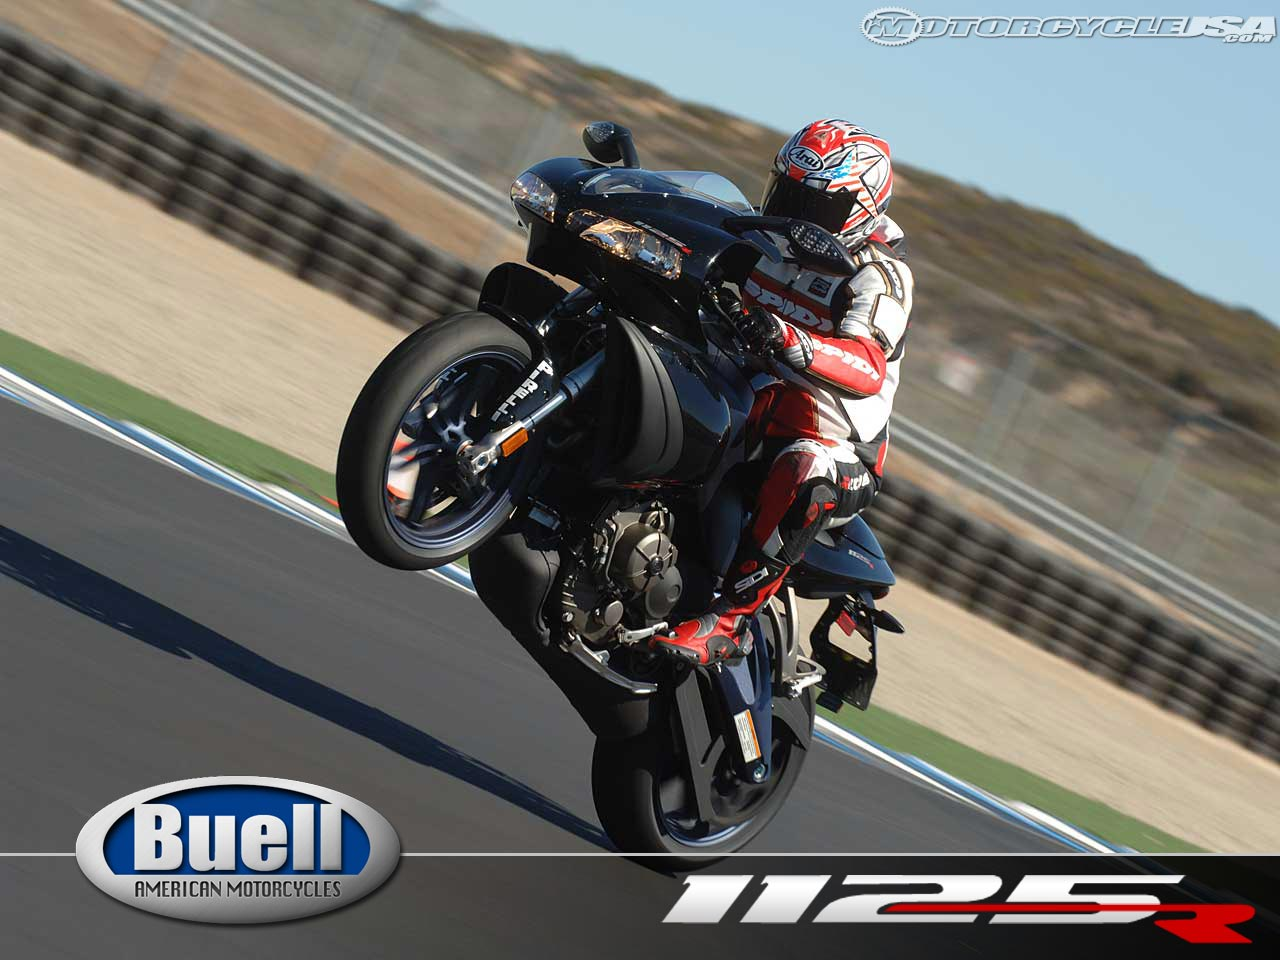 Buell 1125 R images #66463